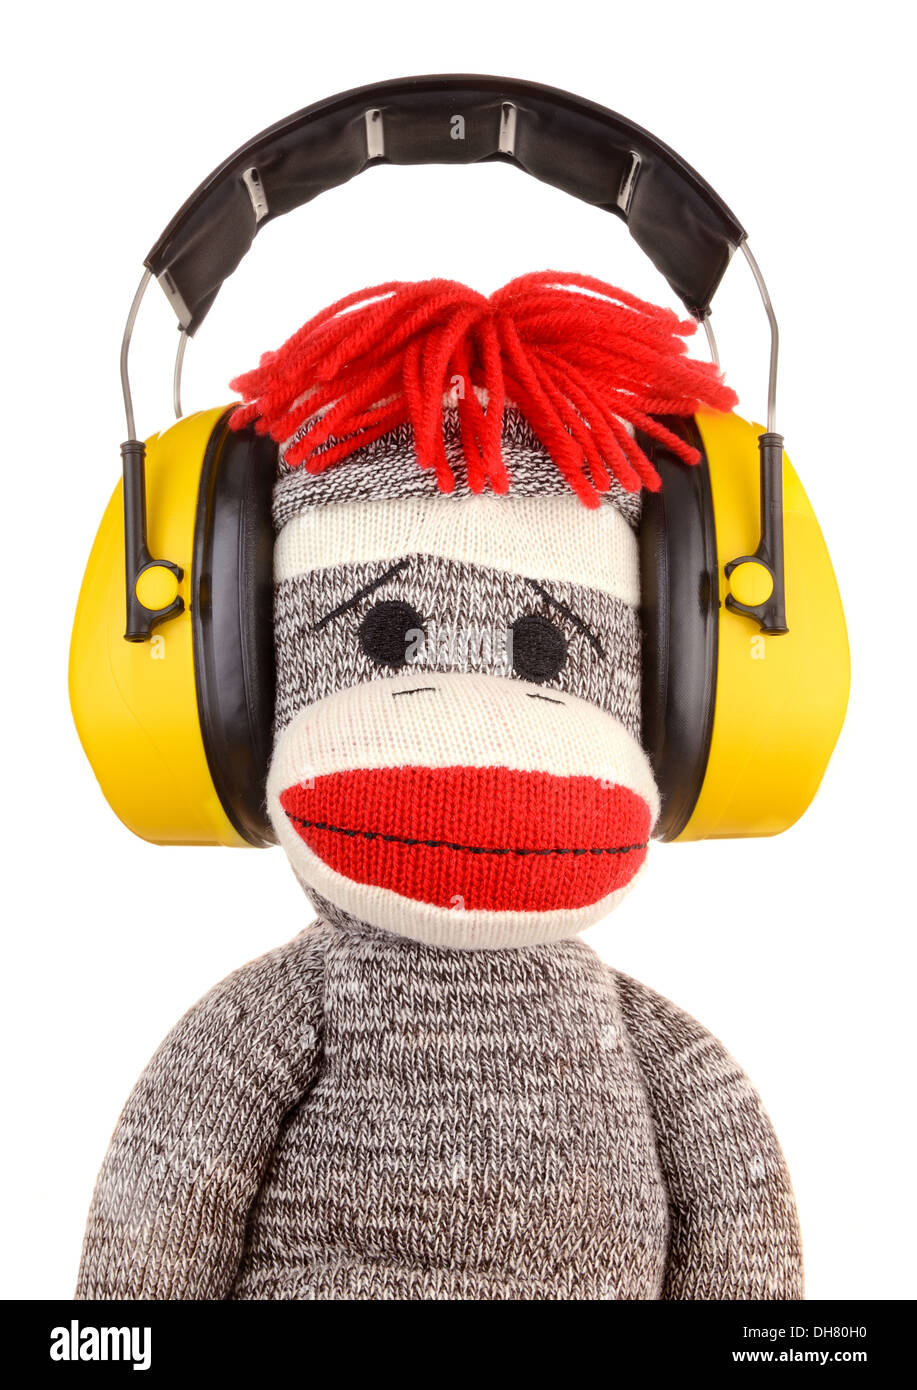 ear muffs for hearing protection - Stock Image